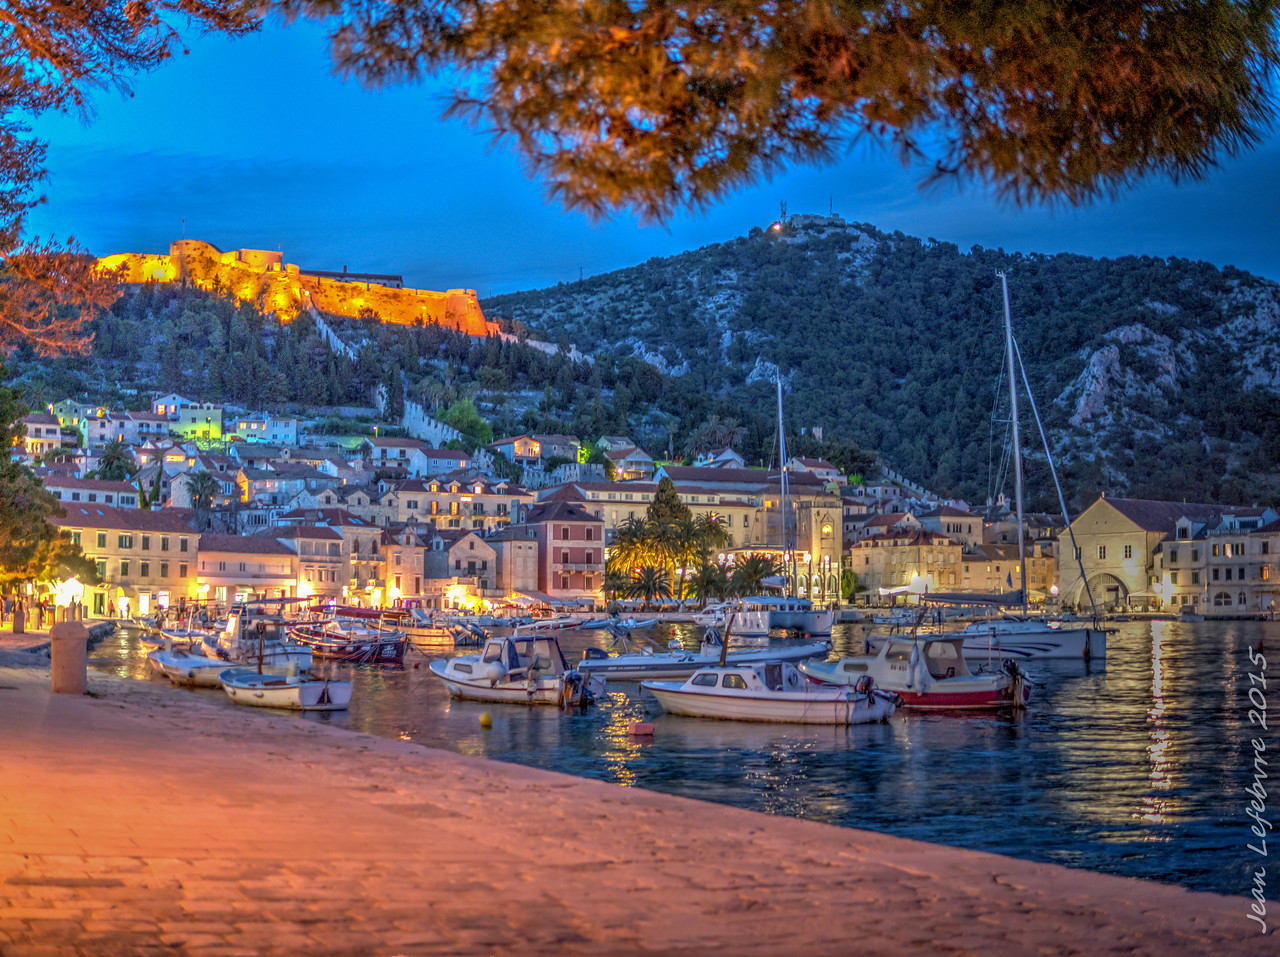 Hvar Harbour at Sunset, Croatia